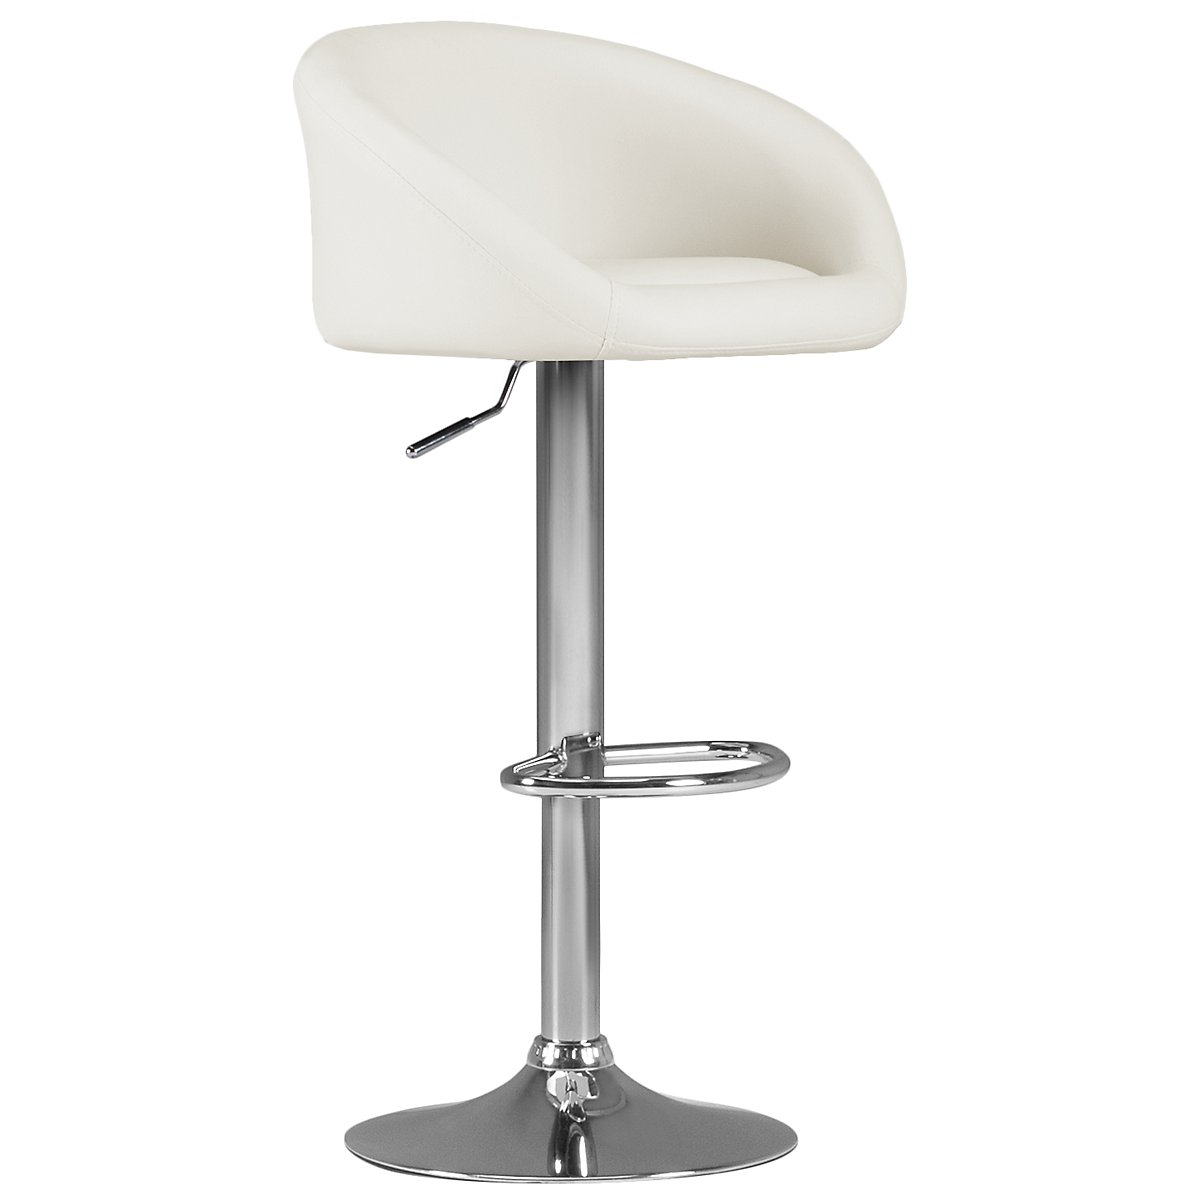 Dayton White Upholstered Adjustable Stool